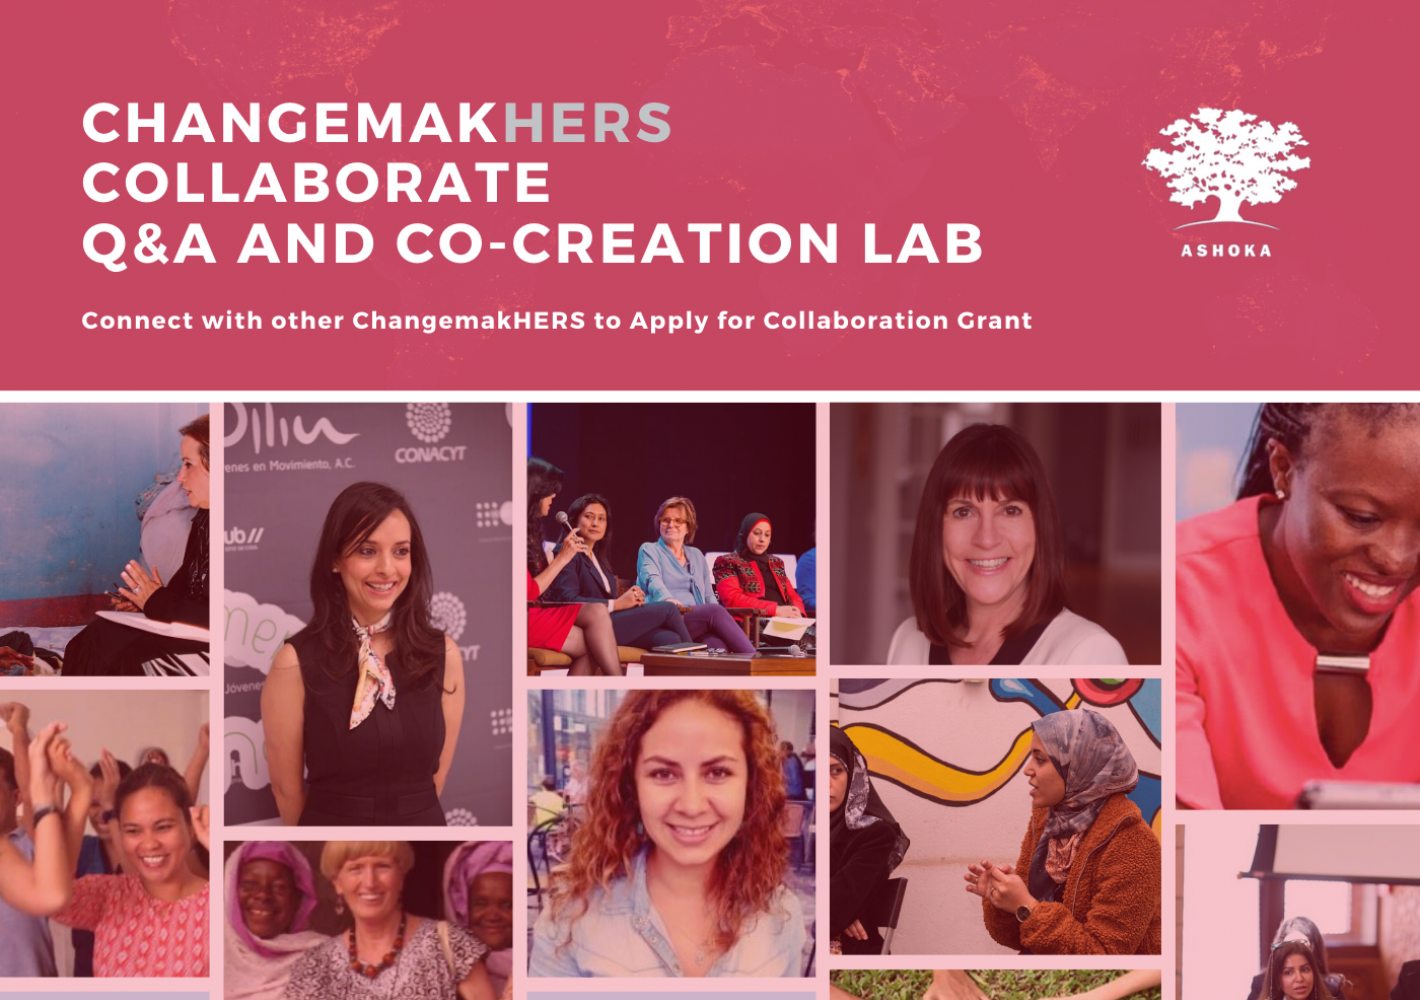 ChangemakHERS Collaborate